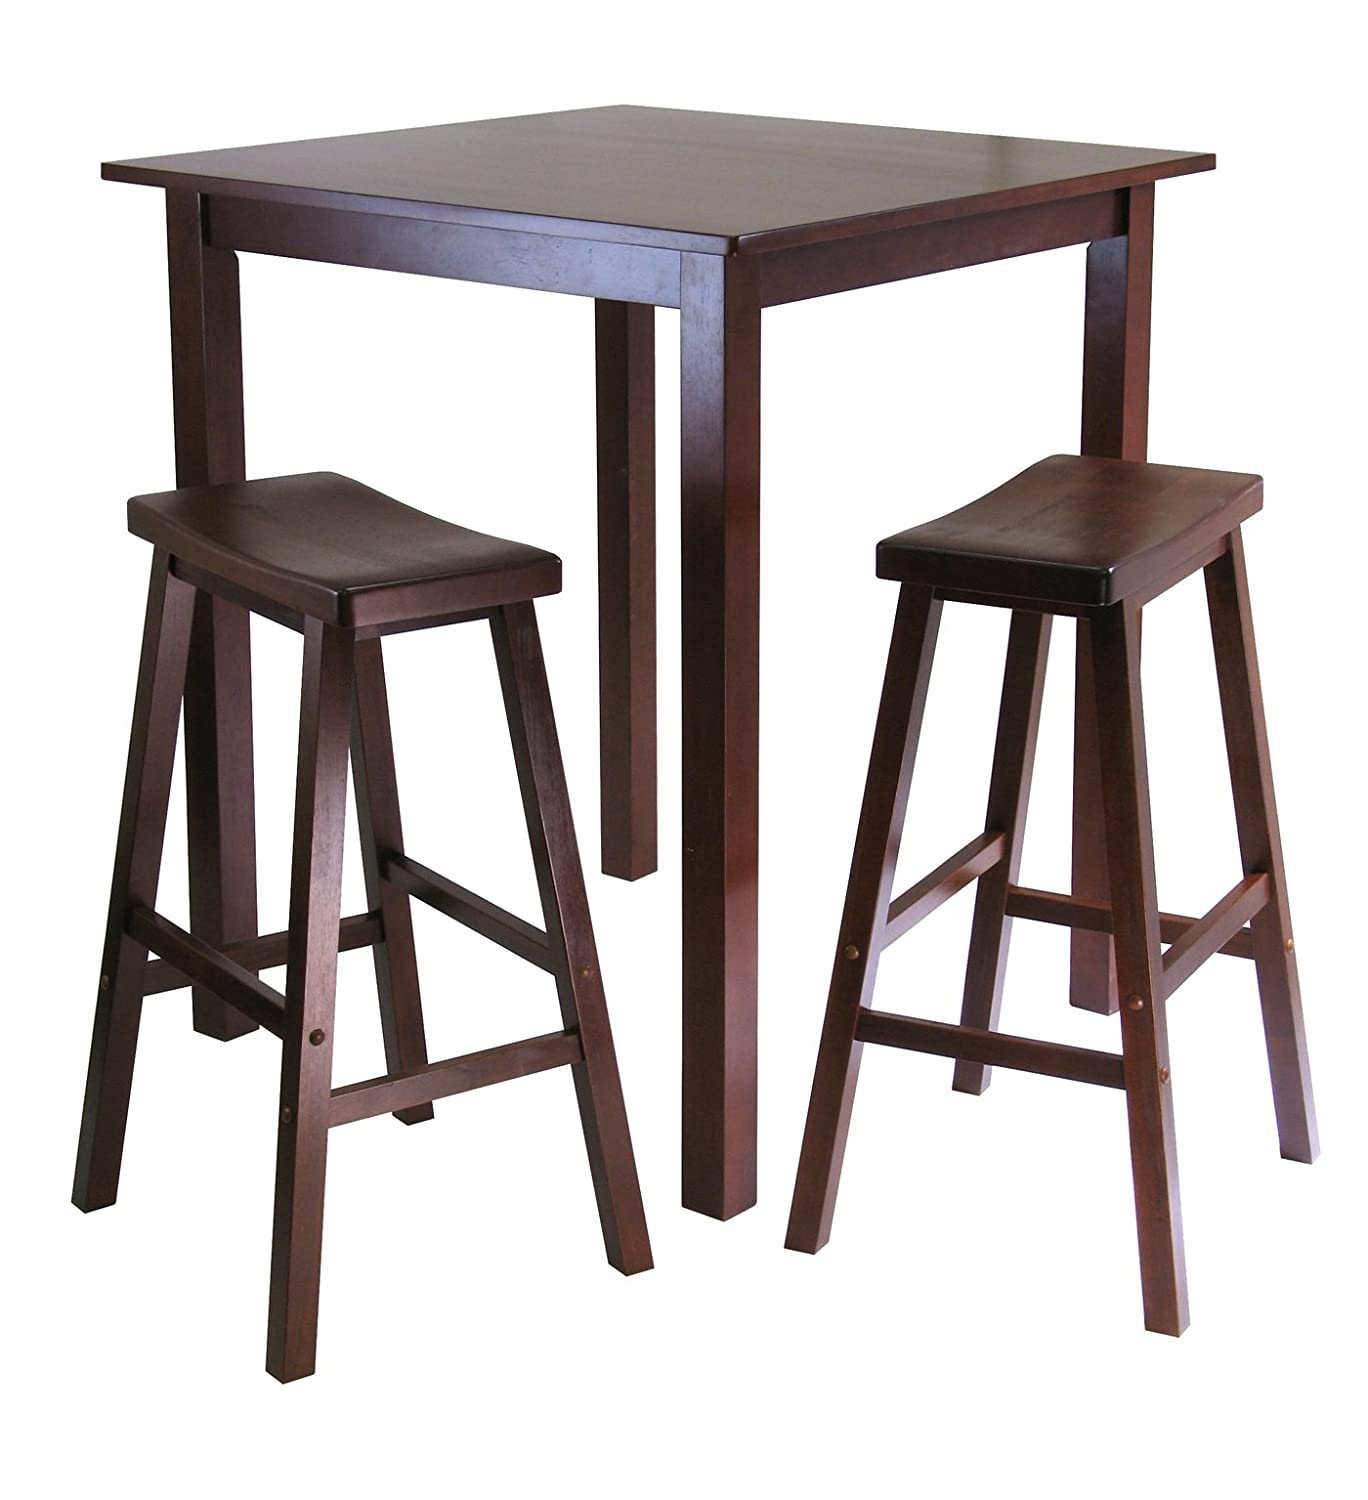 Superbe Amazon.com: Winsomeu0027s Parkland 3 Piece Square High/Pub Table Set In Antique  Walnut Finish: Kitchen U0026 Dining